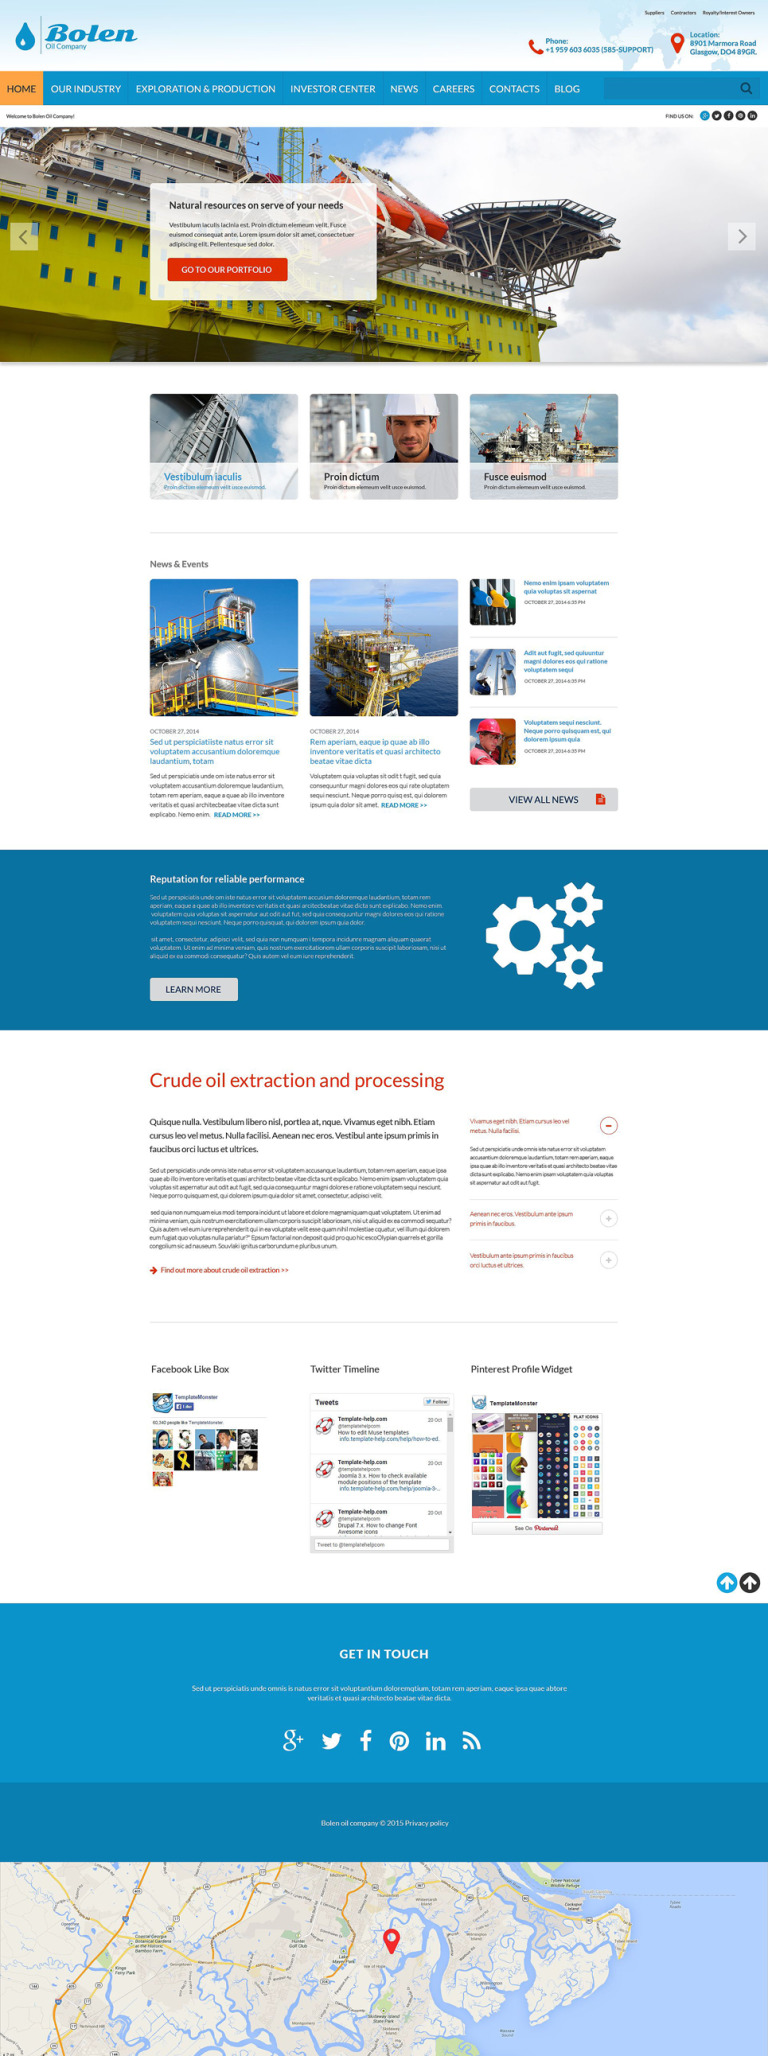 Oil Company Website Template New Screenshots BIG